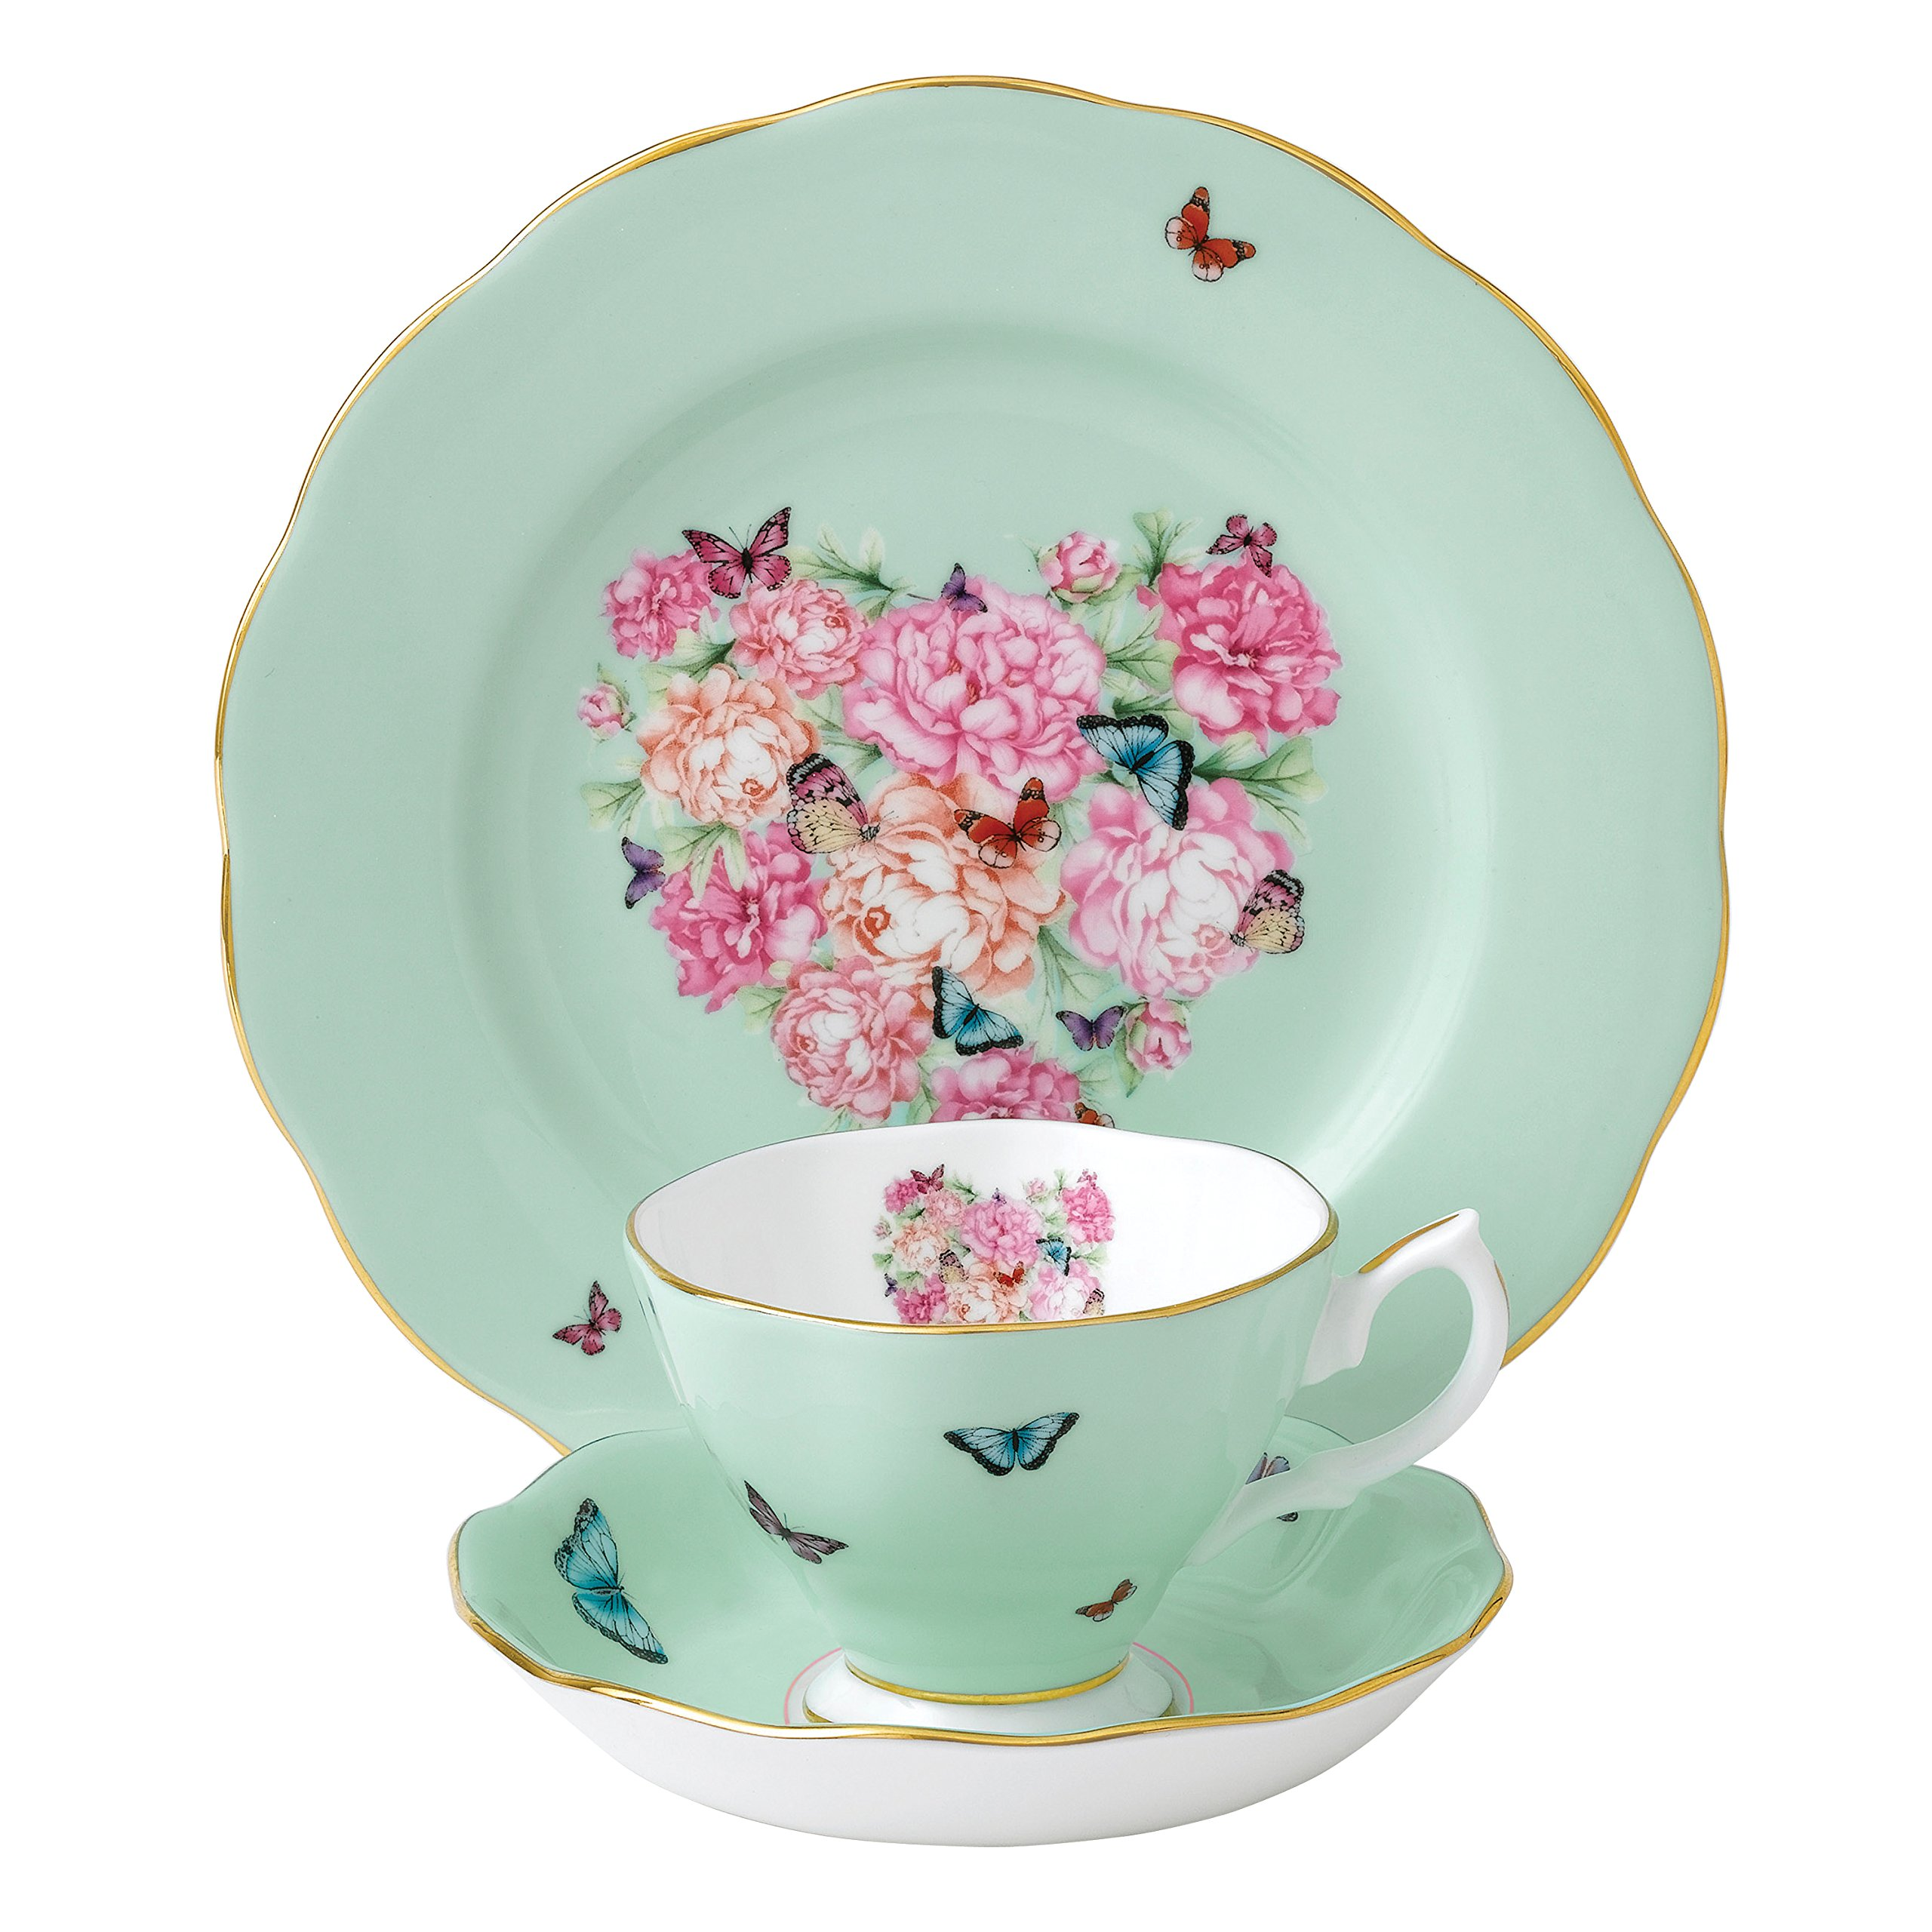 Royal Albert 40001837 Blessings 3-Piece Teacup, Saucer and Plate Set Designed by Miranda Kerr